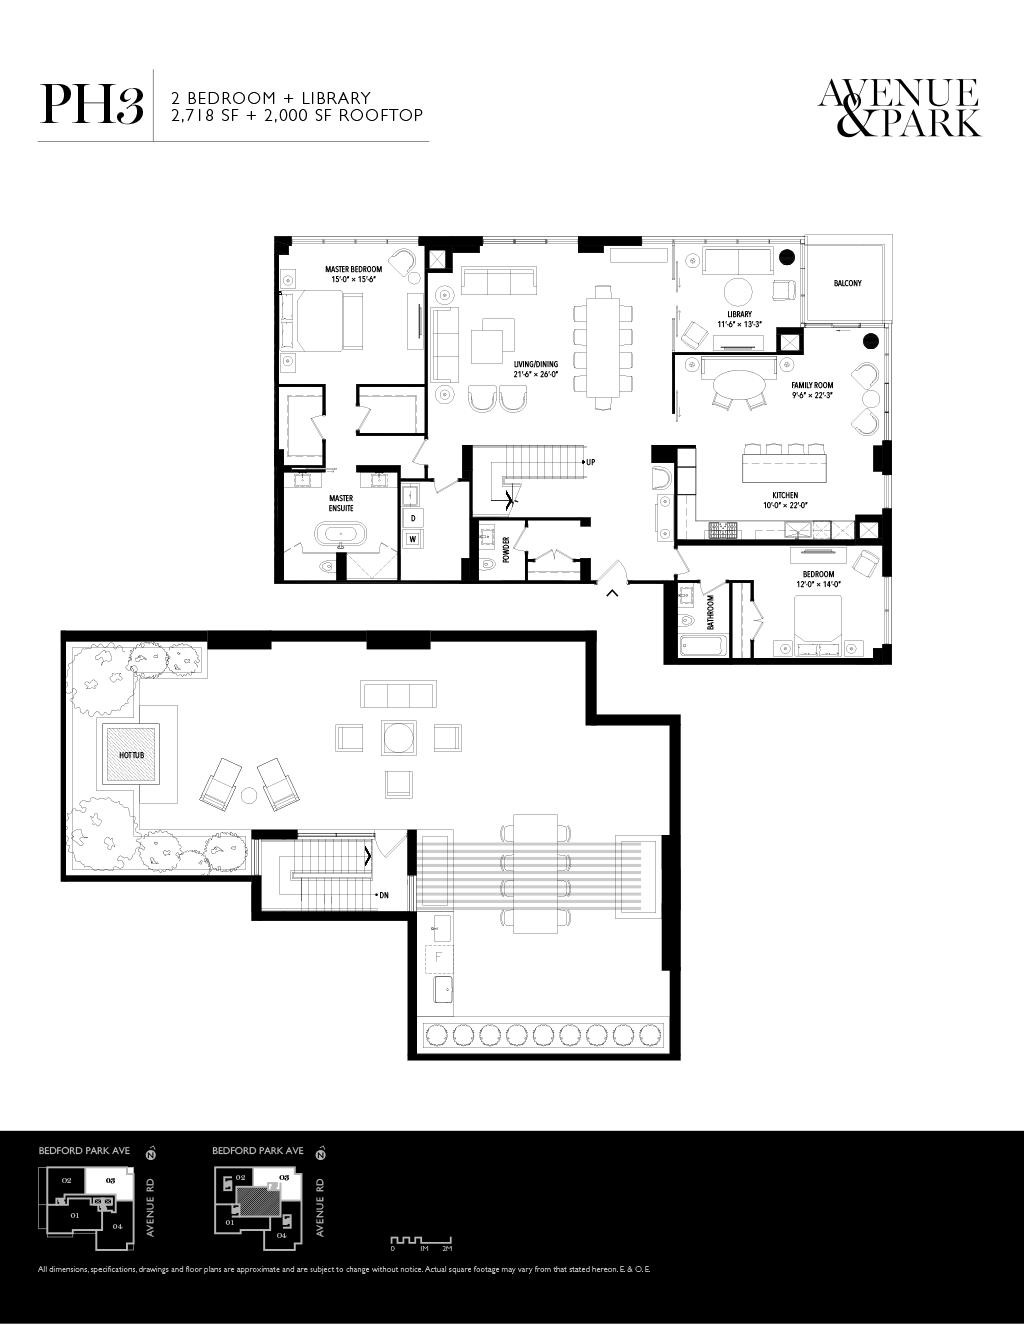 1580 AVENUE - FLOORPLANS TWO BED PH 2718 SF - CONTACT YOSSI KAPLAN